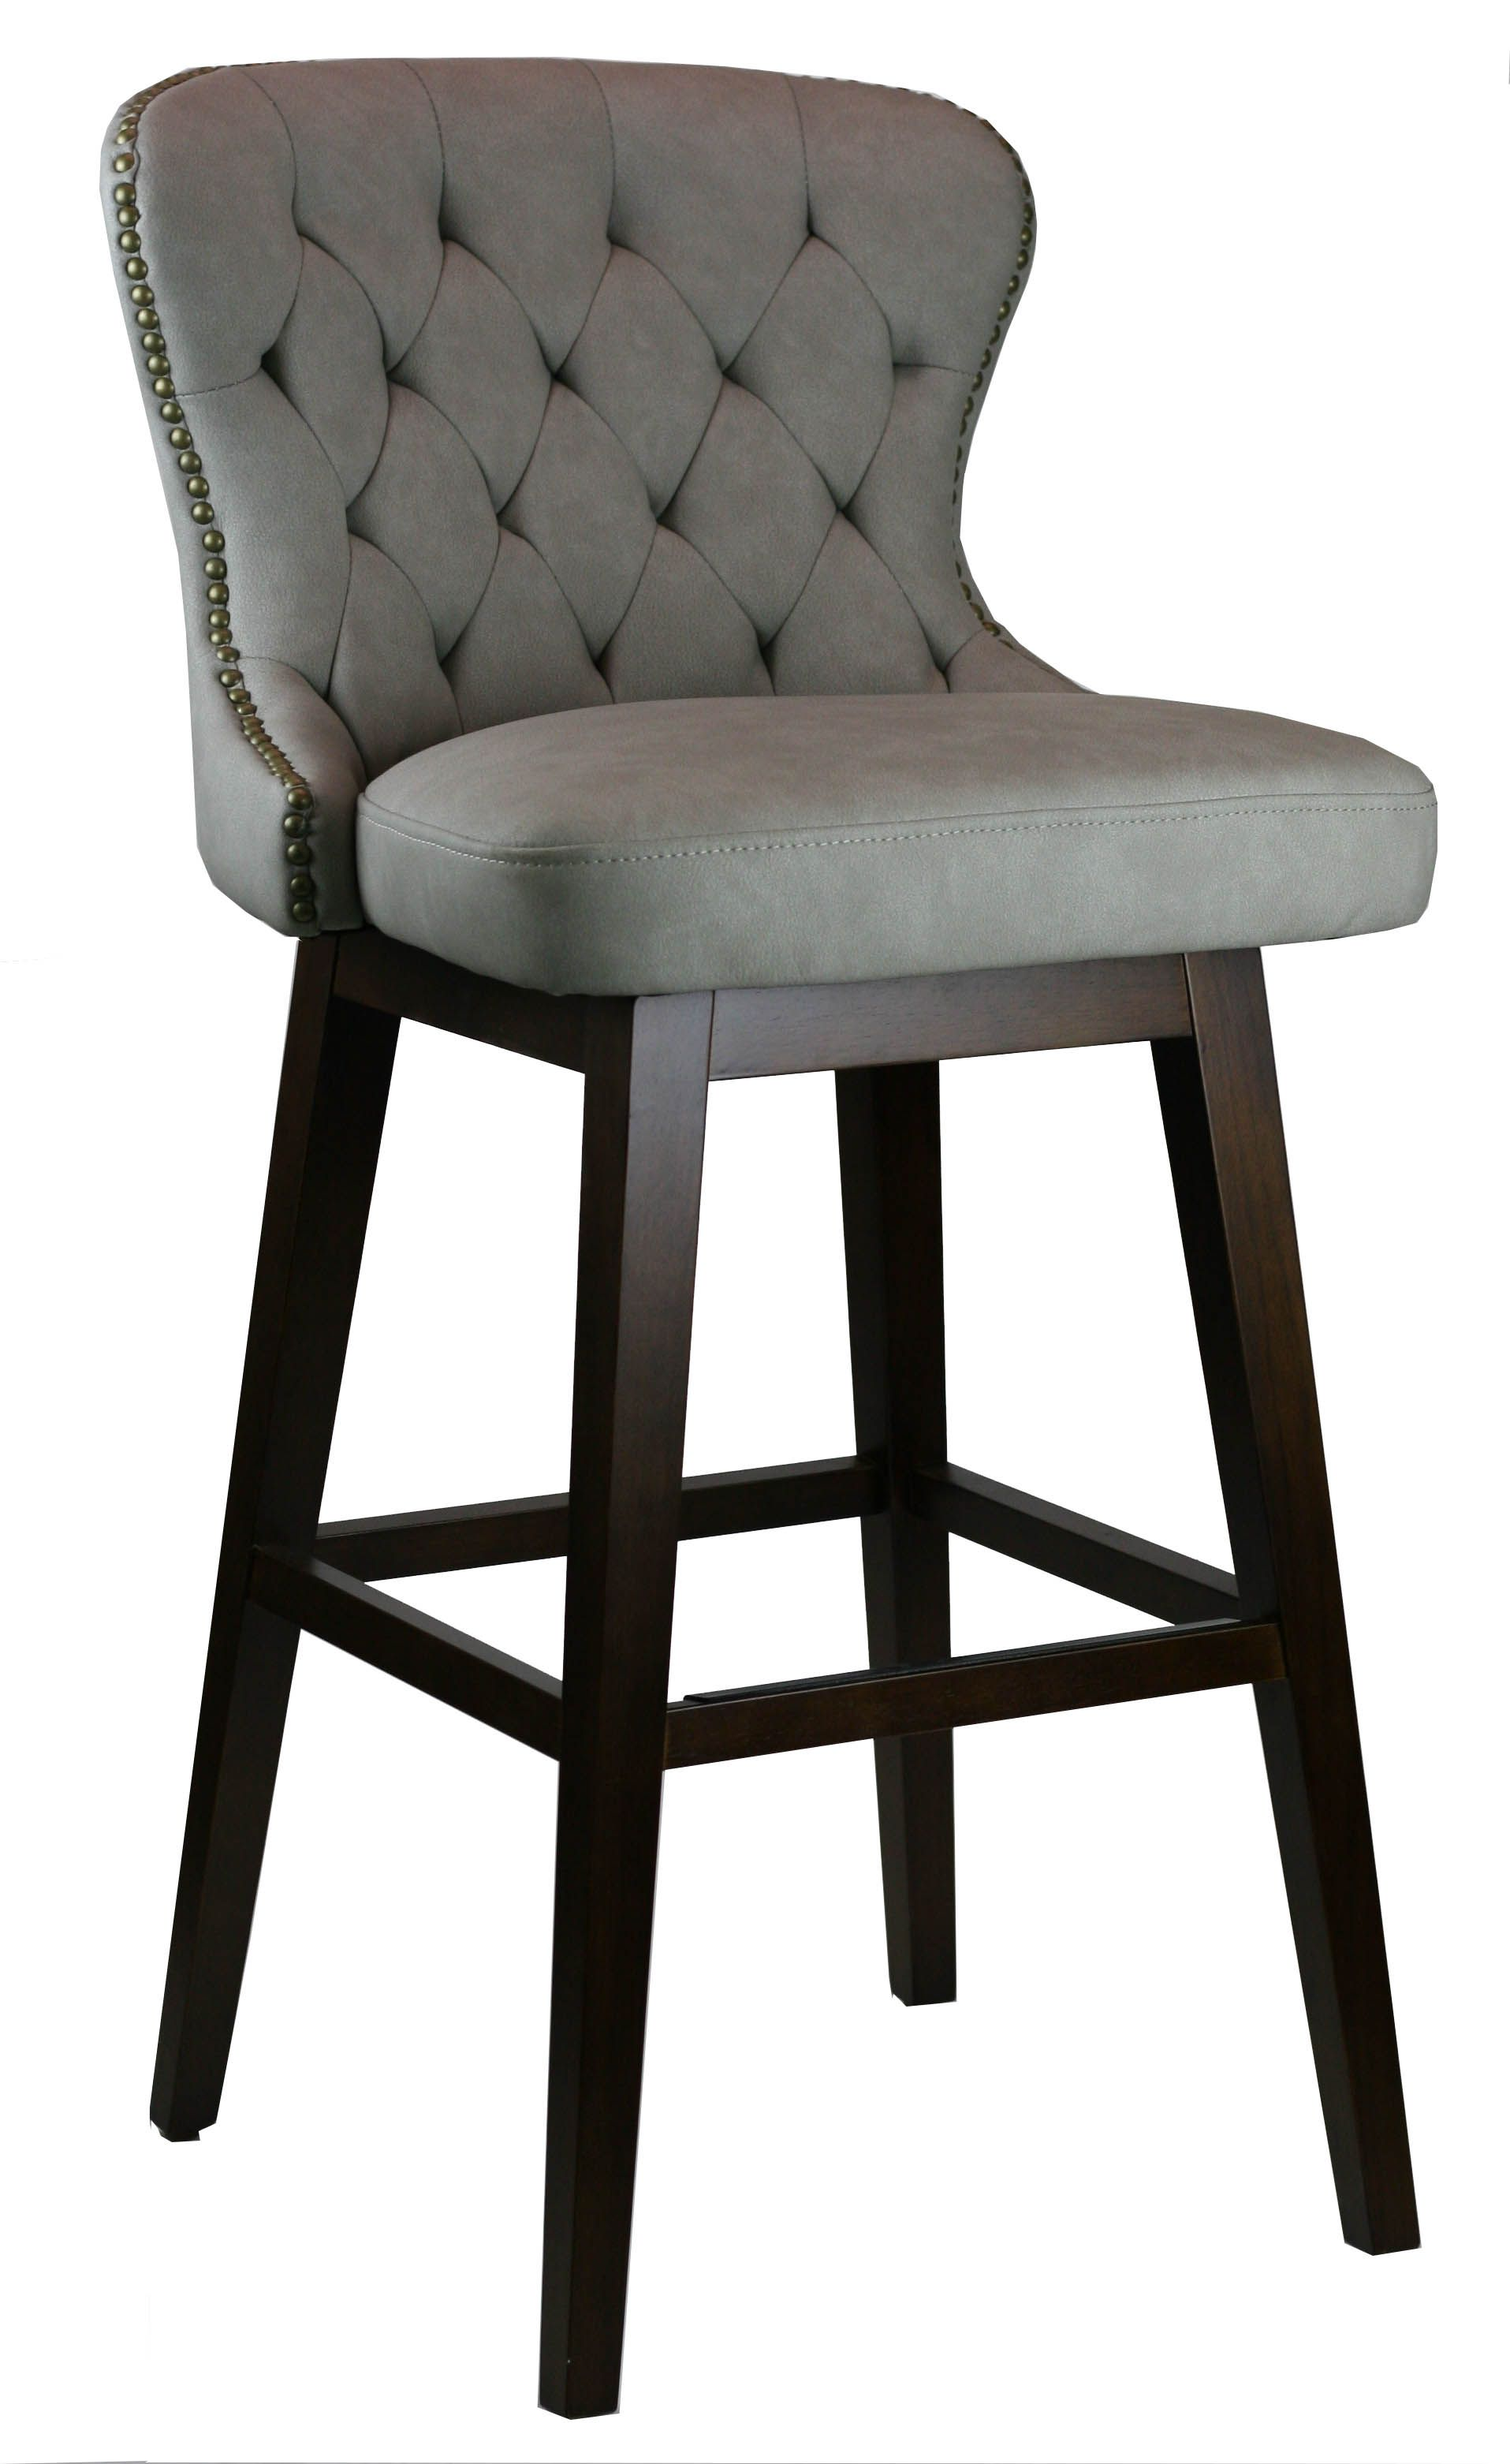 Awe Inspiring Black Tufted Swivel Counter Stool In 2019 Bar Stools Bar Pabps2019 Chair Design Images Pabps2019Com